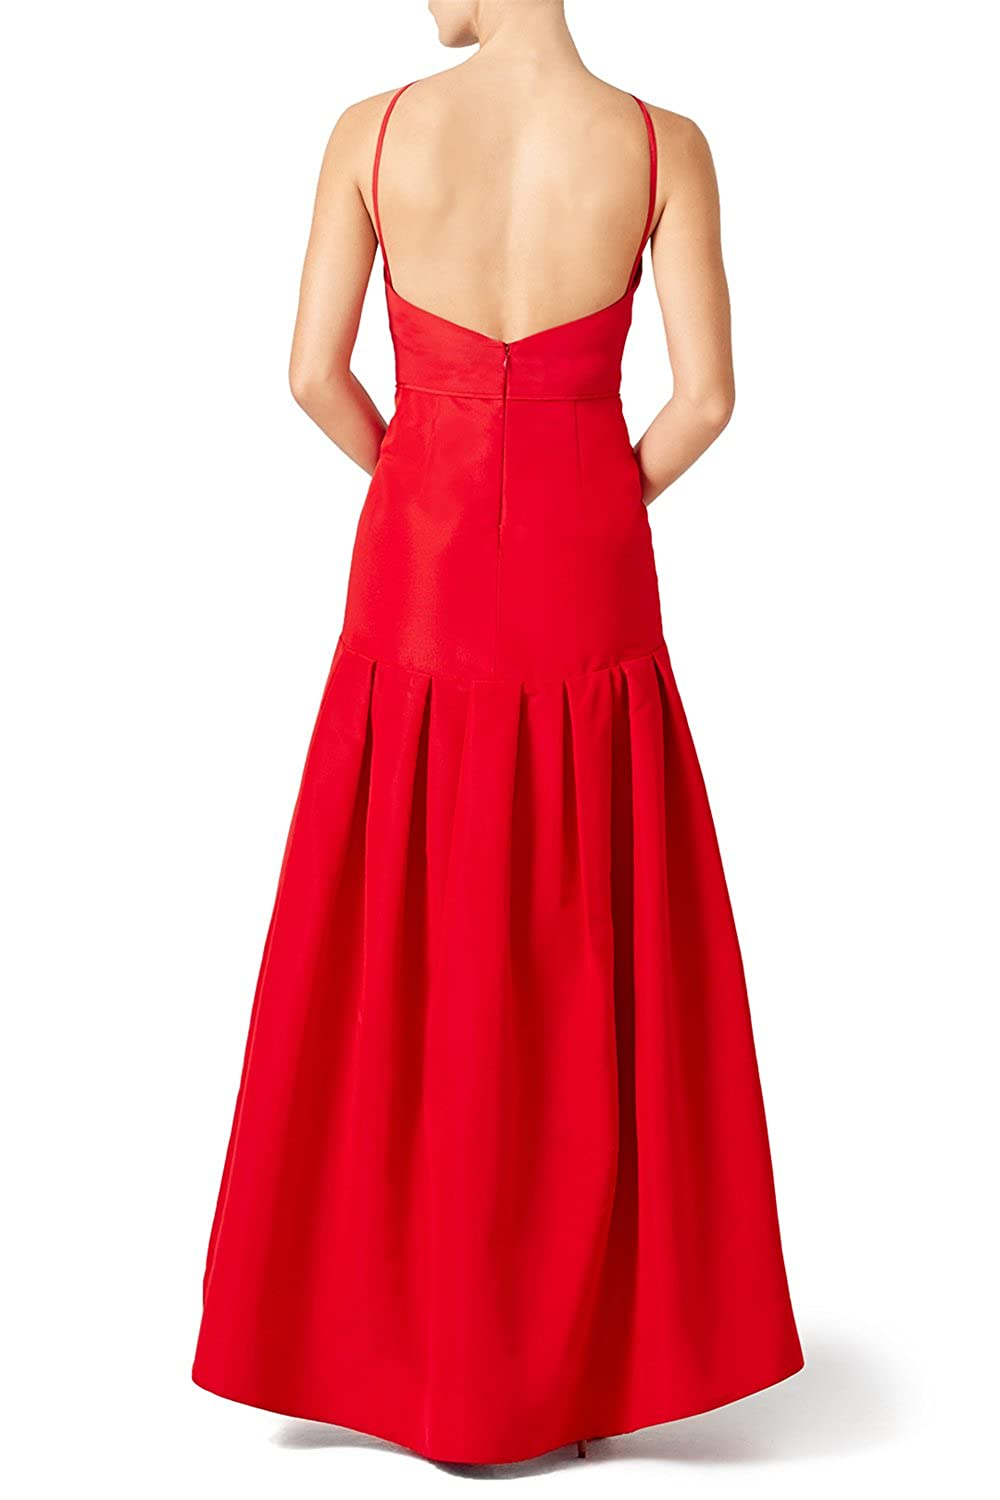 AngelDragon Fashion Halter Hi-lo Formal Prom Dresses Backless Evening Gowns